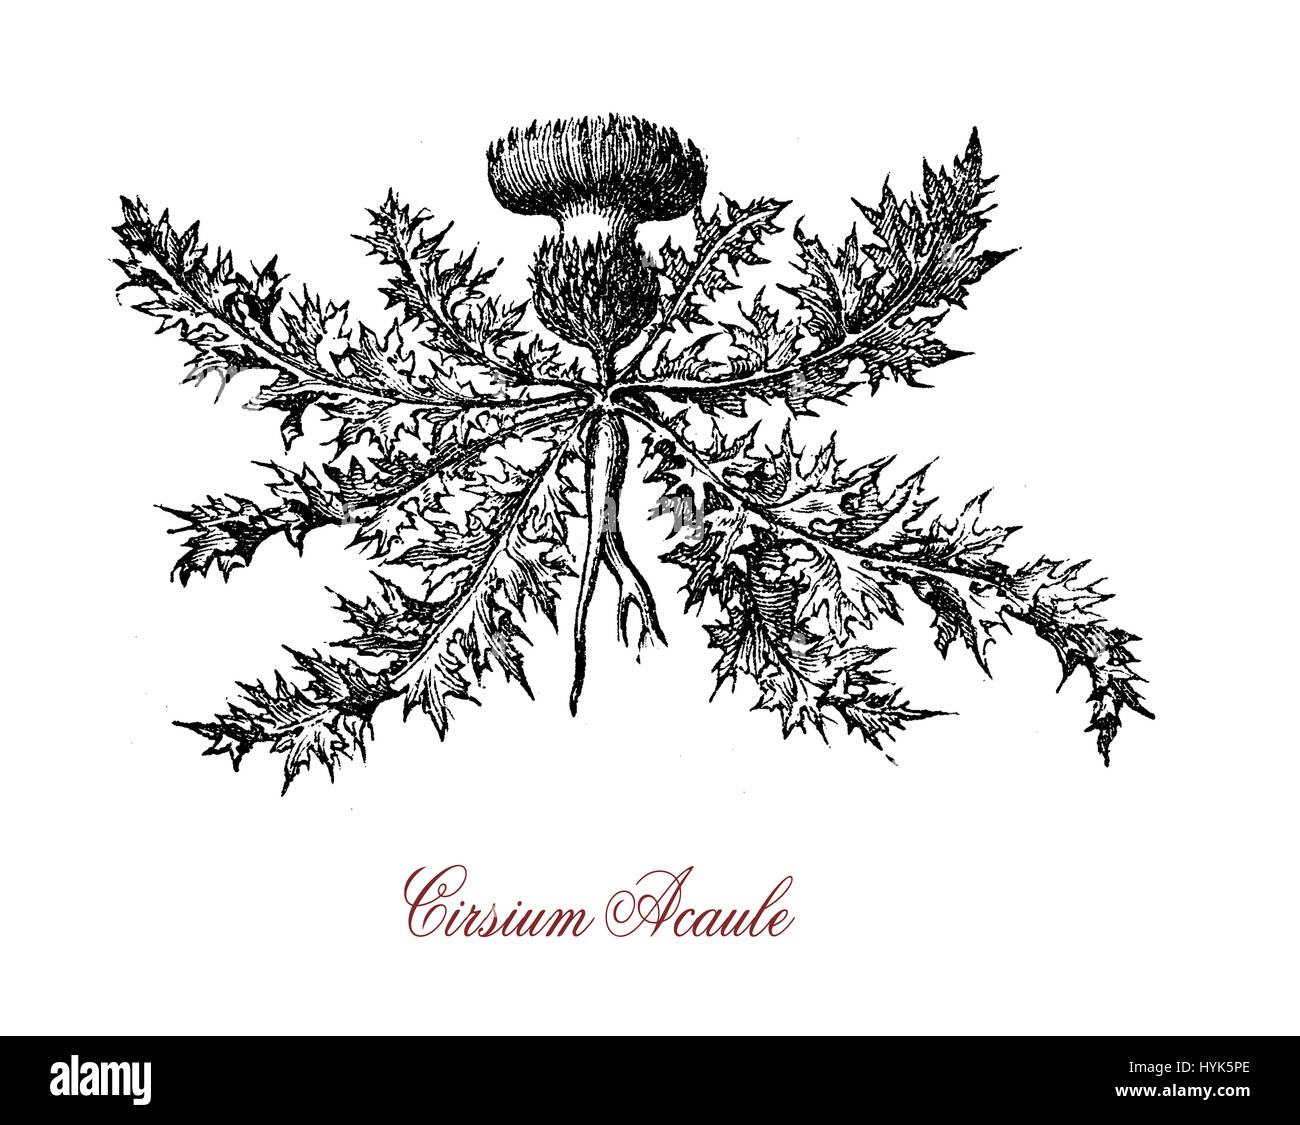 Botanical vintage engraving of Cirsium acaule, perennial herb  native to Europe with spiny hairy leaves pread like - Stock Image